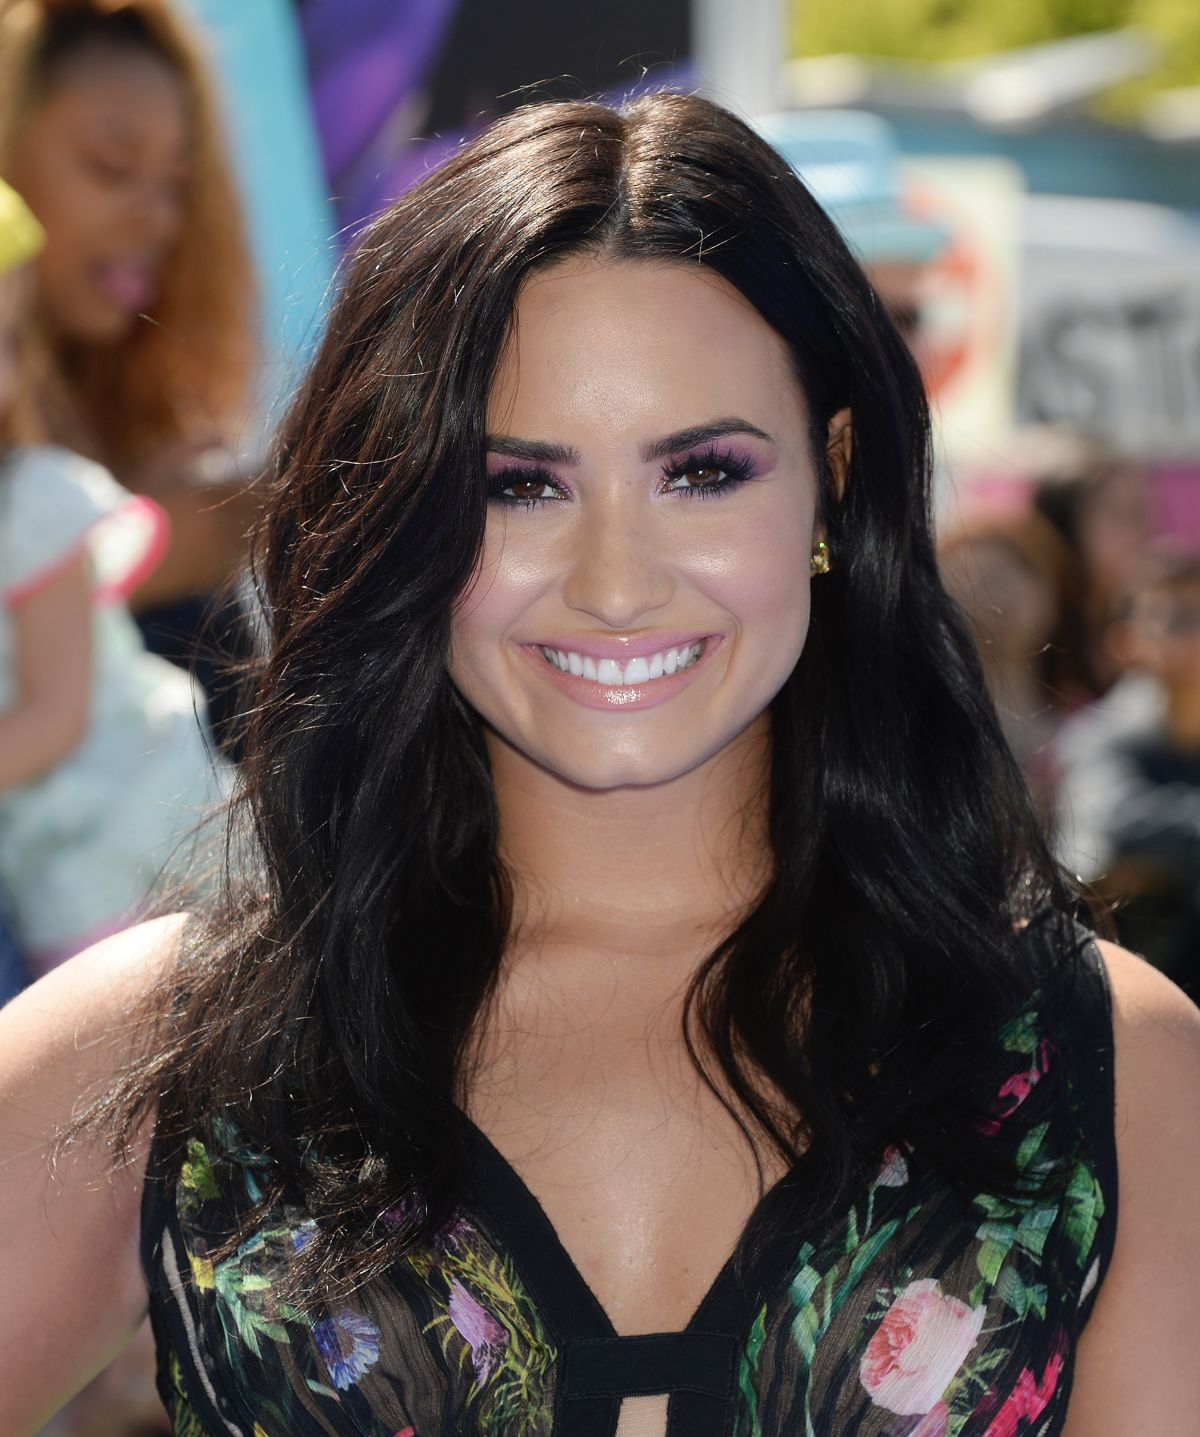 demi lovato - photo #31